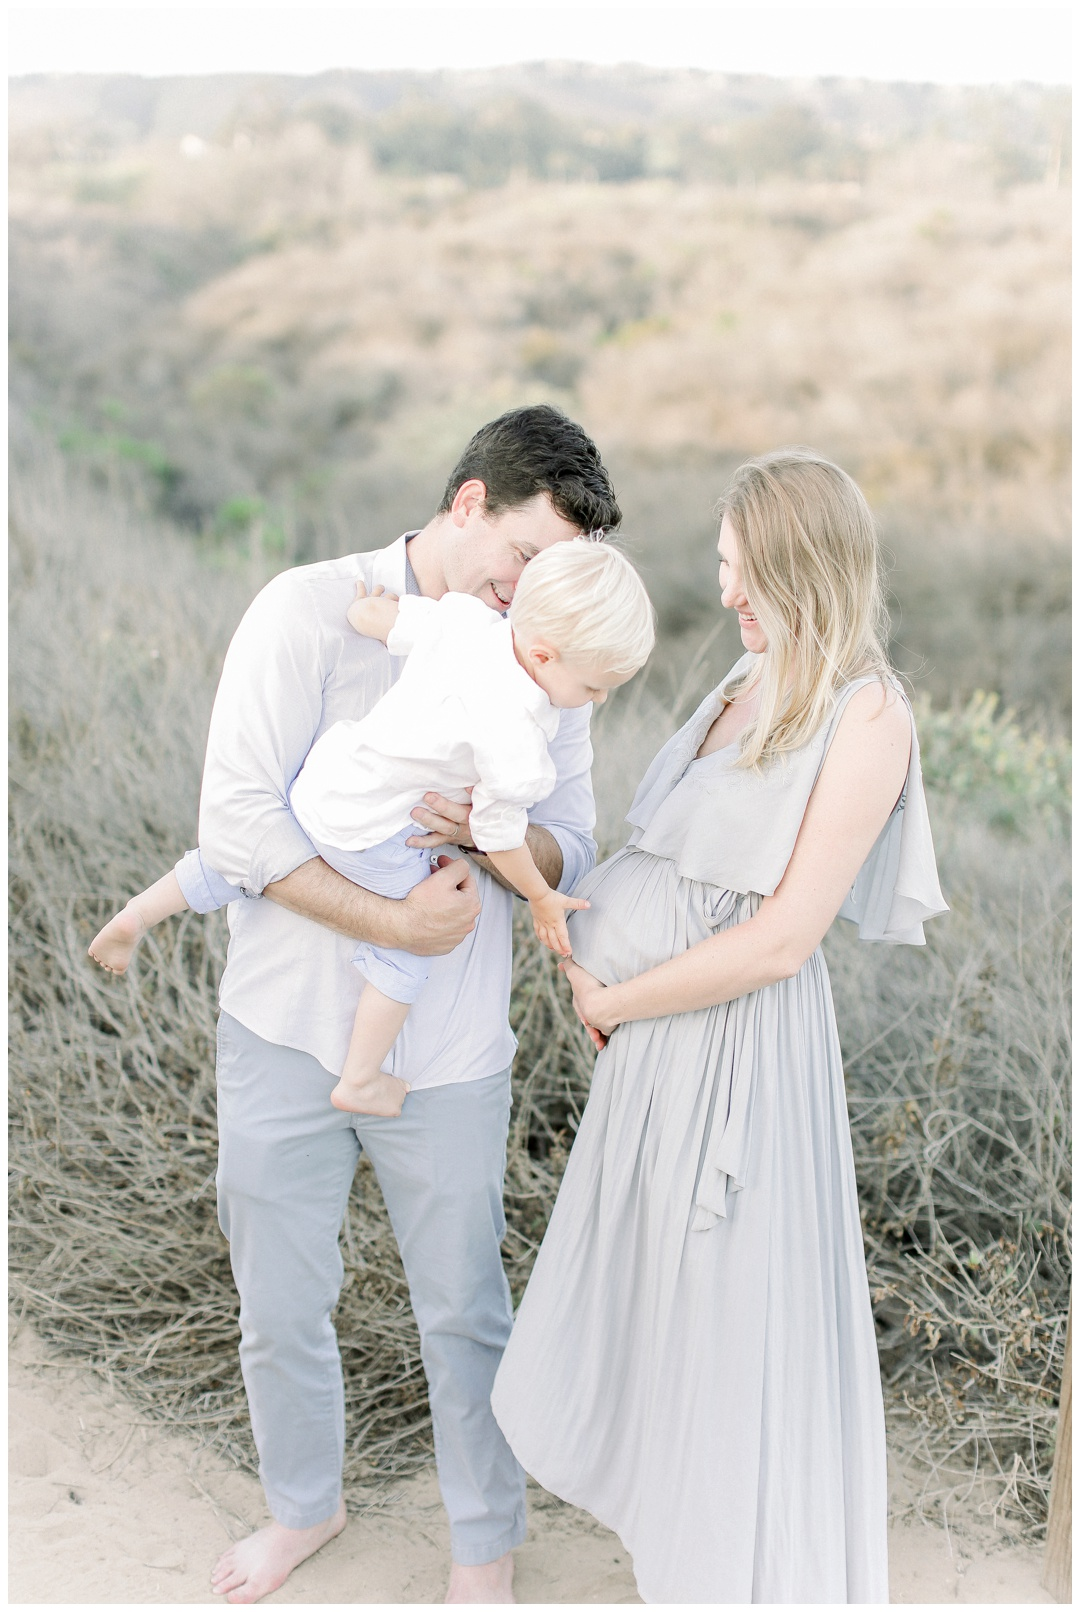 The_Epler's_Family_Newport_Beach_Family_Photographer_Orange_County_Family_Photography_Cori_Kleckner_Photography_Orange_County_Beach_Photographer_Family_Photos_Session_Crystal_Cove_Session__1458.jpg